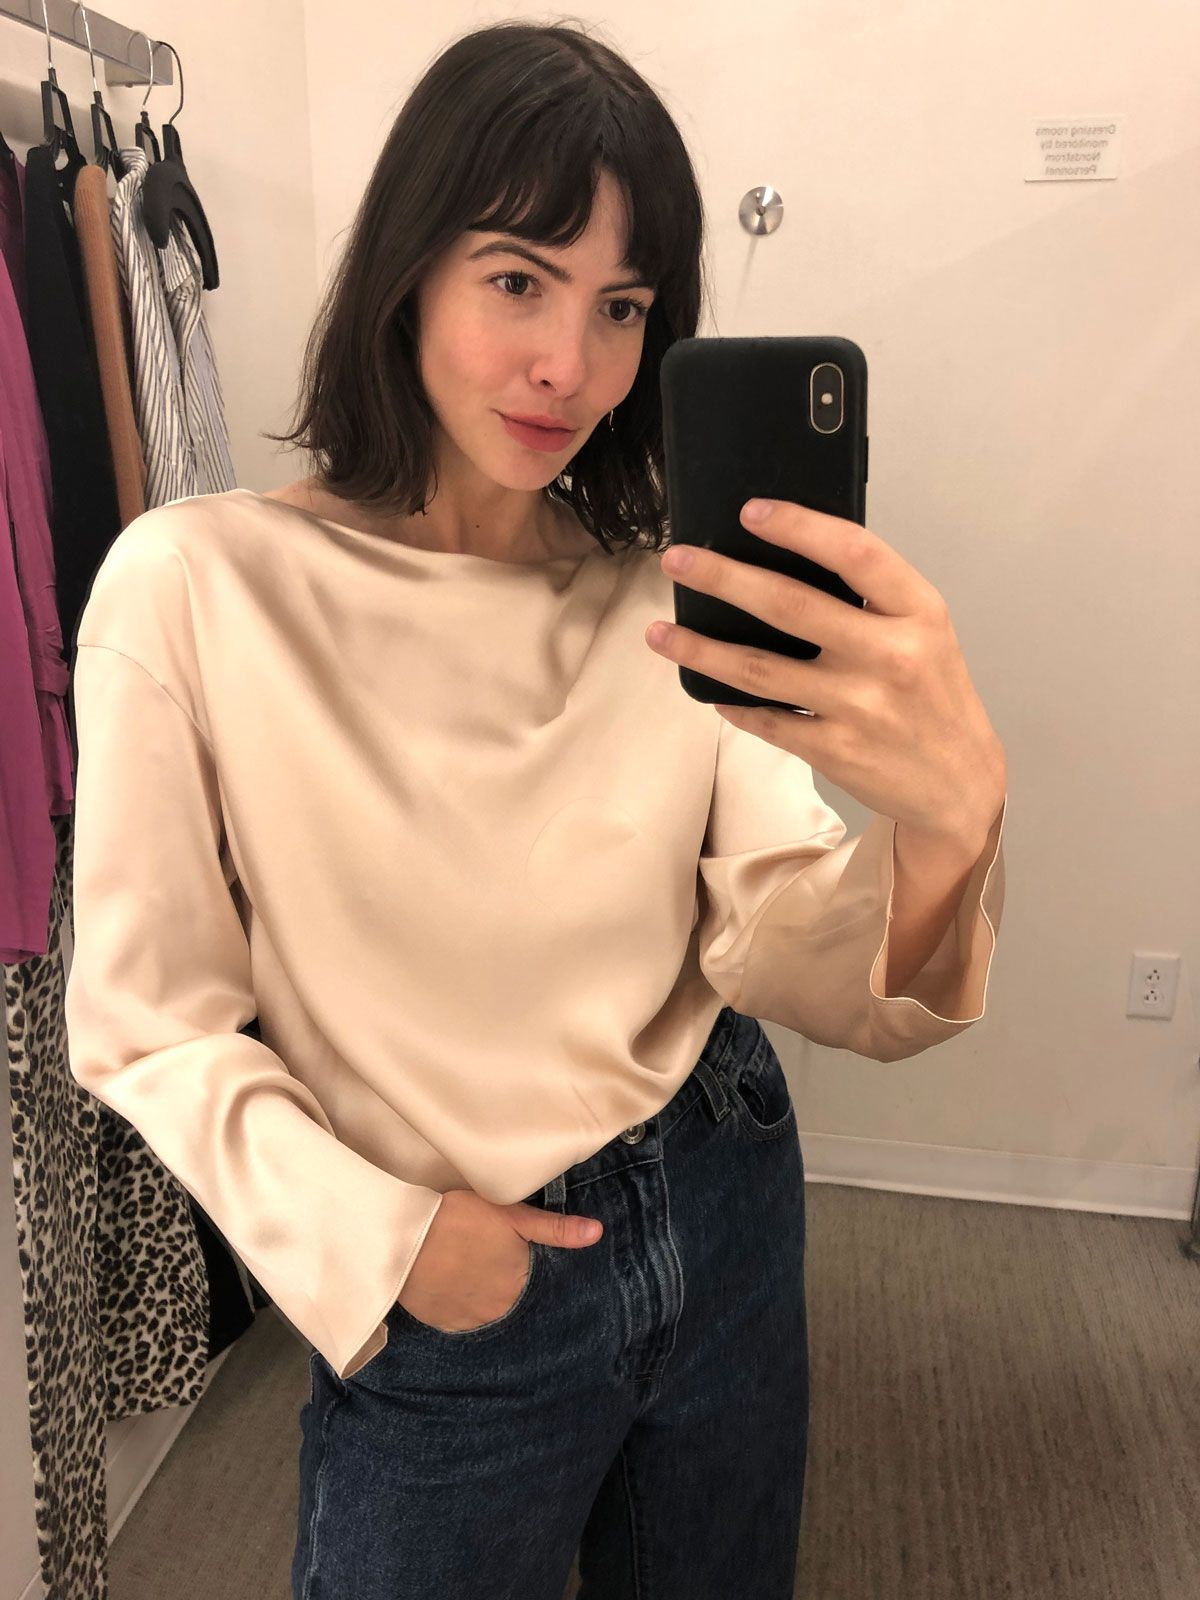 I Tried on 64 Items From the Big Nordstrom Sale—I Would Buy These 11 Now